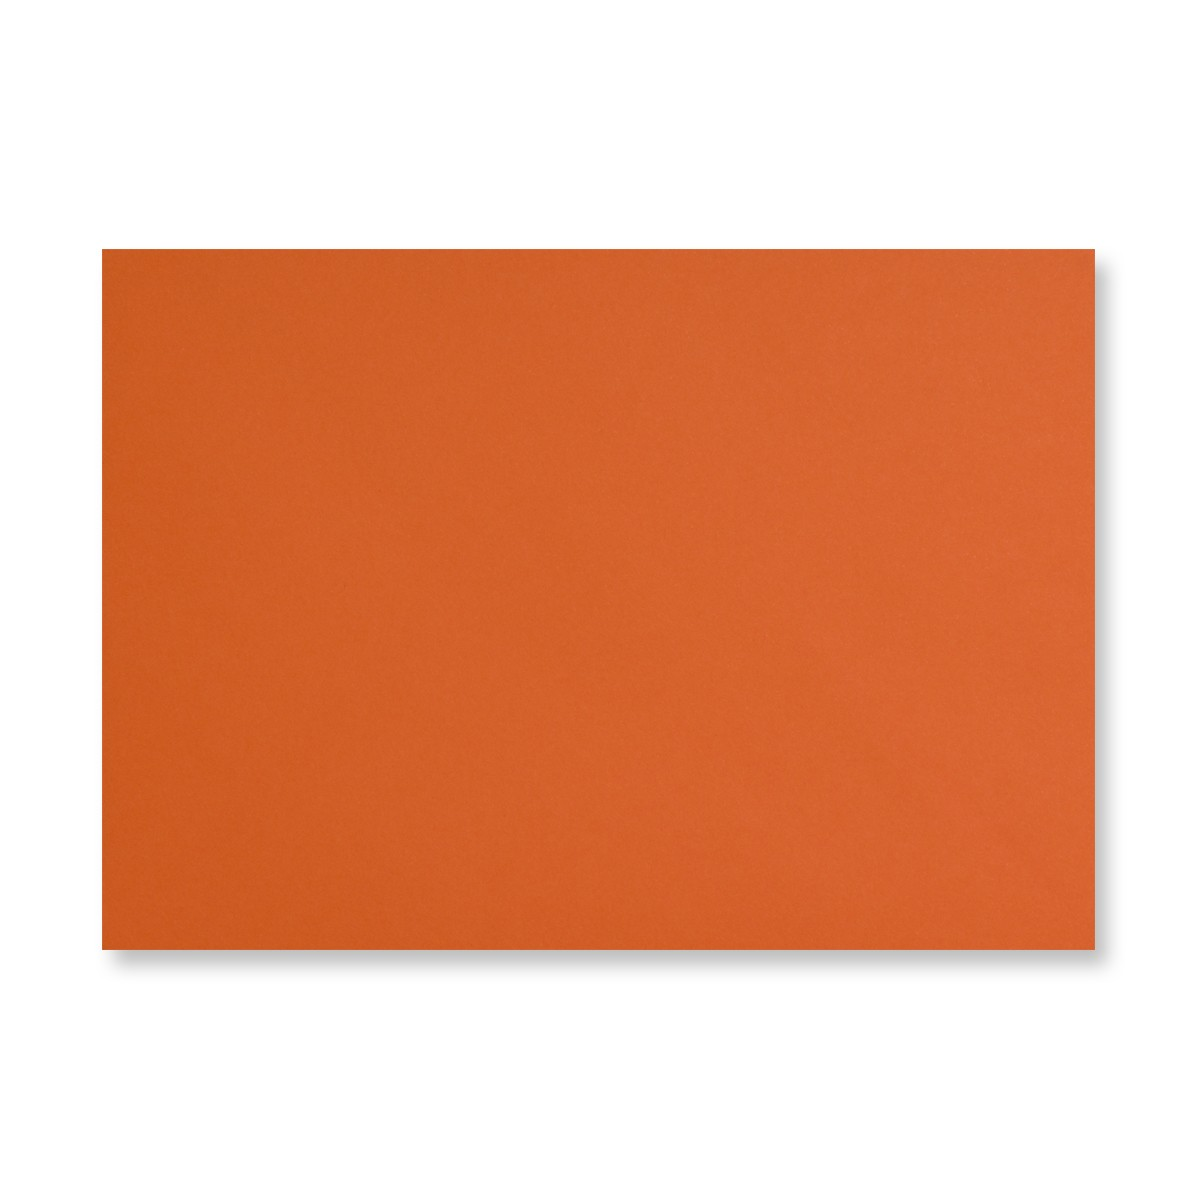 ORANGE 152 x 216 mm ENVELOPES 120GSM (i9)